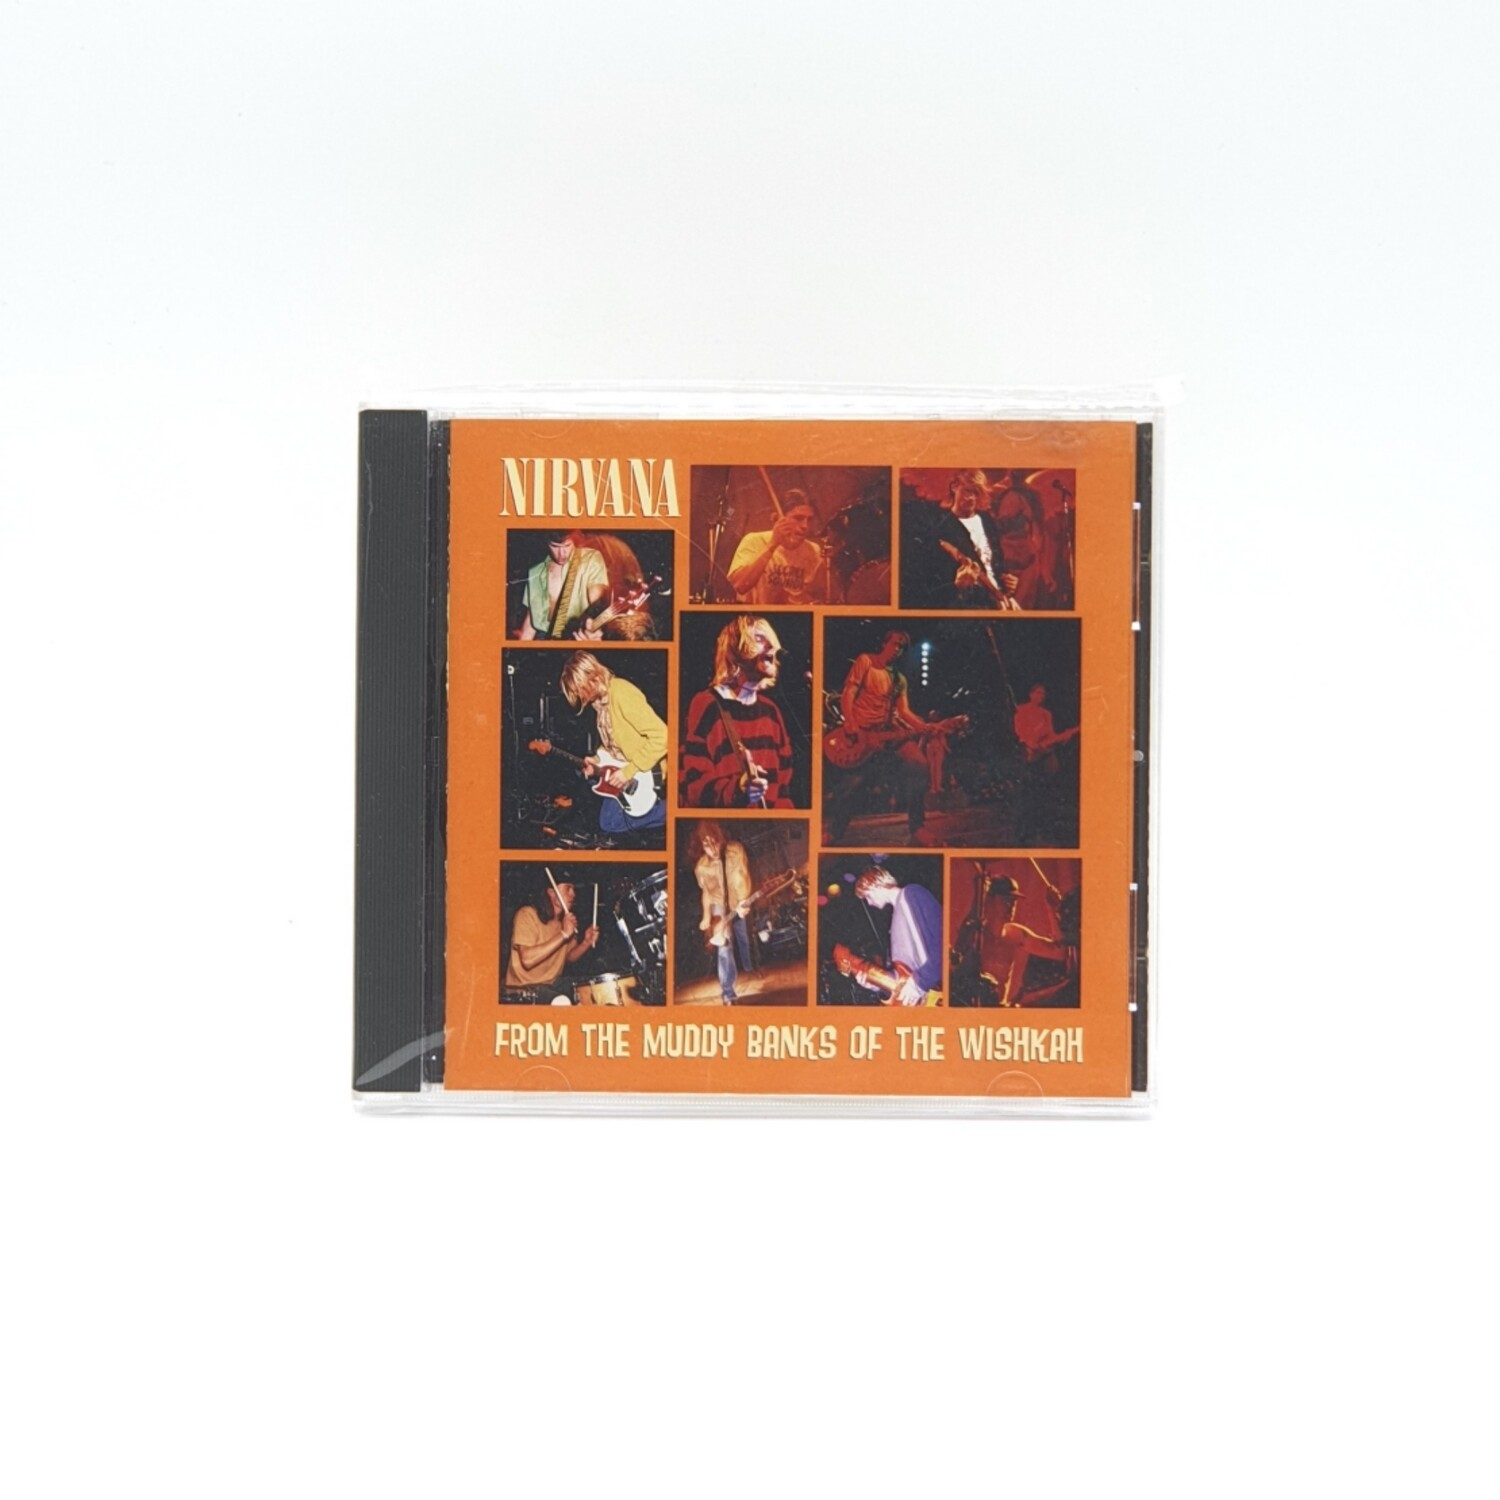 NIRVANA -FROM THE MUDDY BANKS OF THE WISHKAH- CD